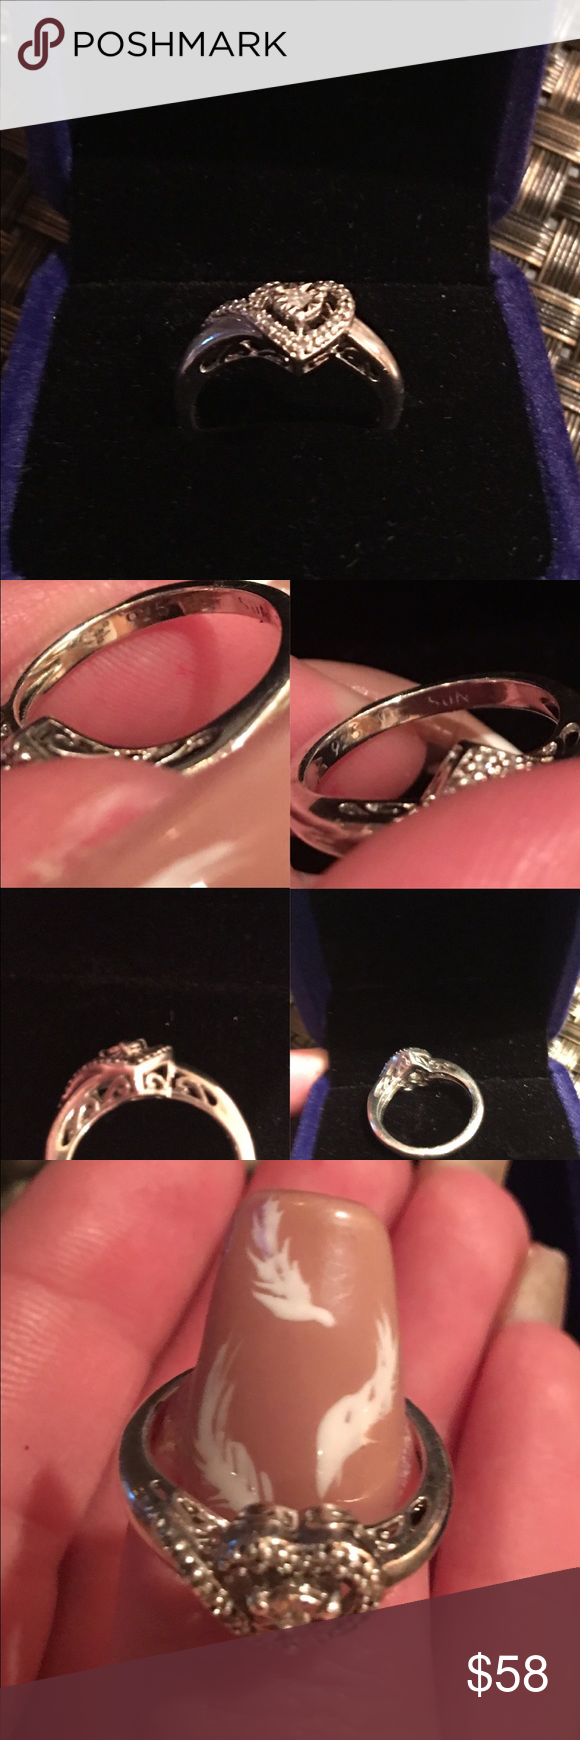 33+ Does kay jewelers buy used jewelry information